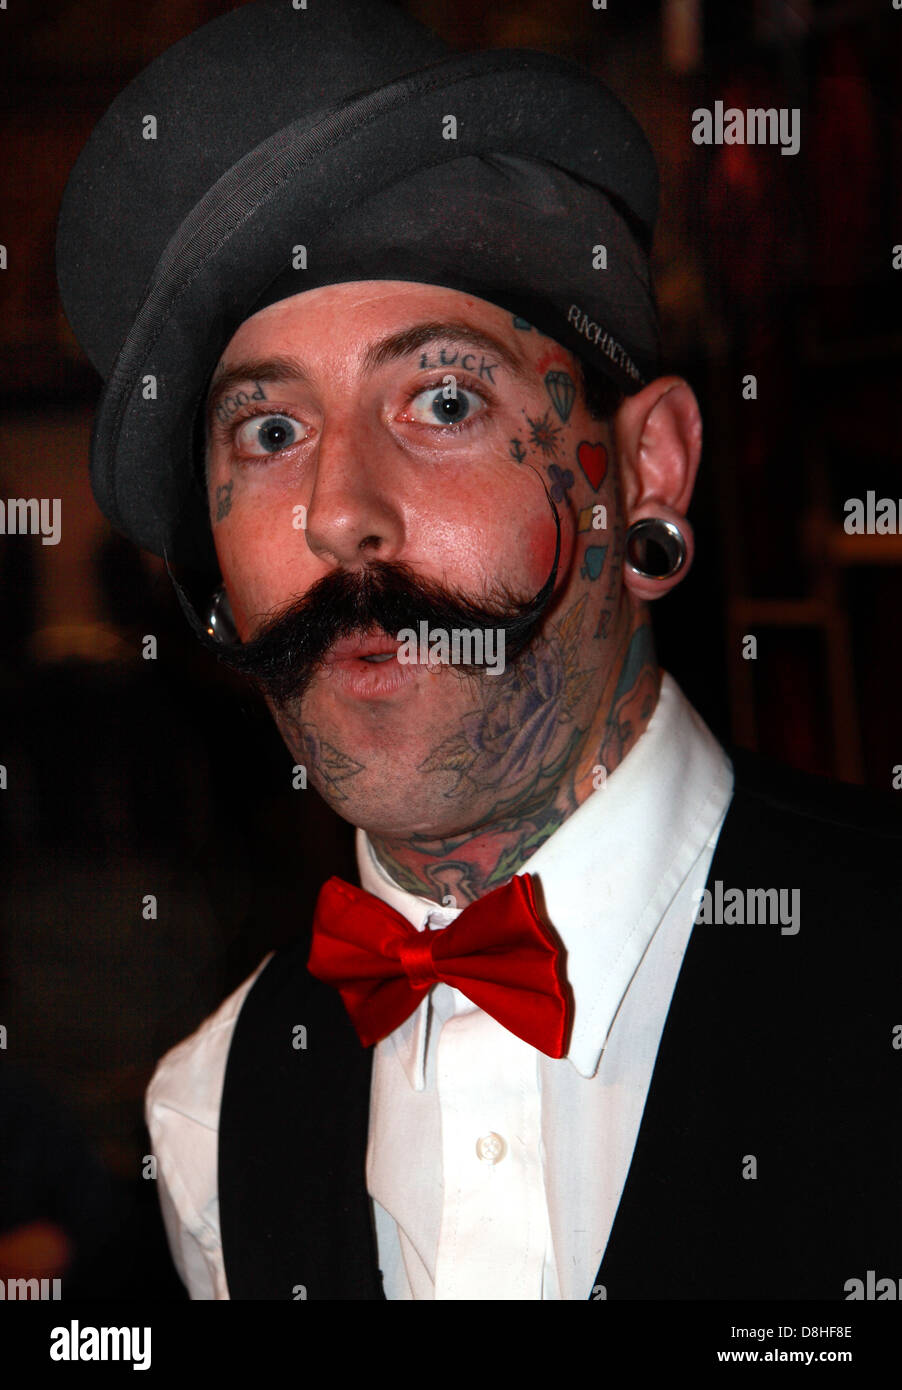 Richie The Barber, a tattooed faced man at Manchester tattoo convention , England, UK - Stock Image